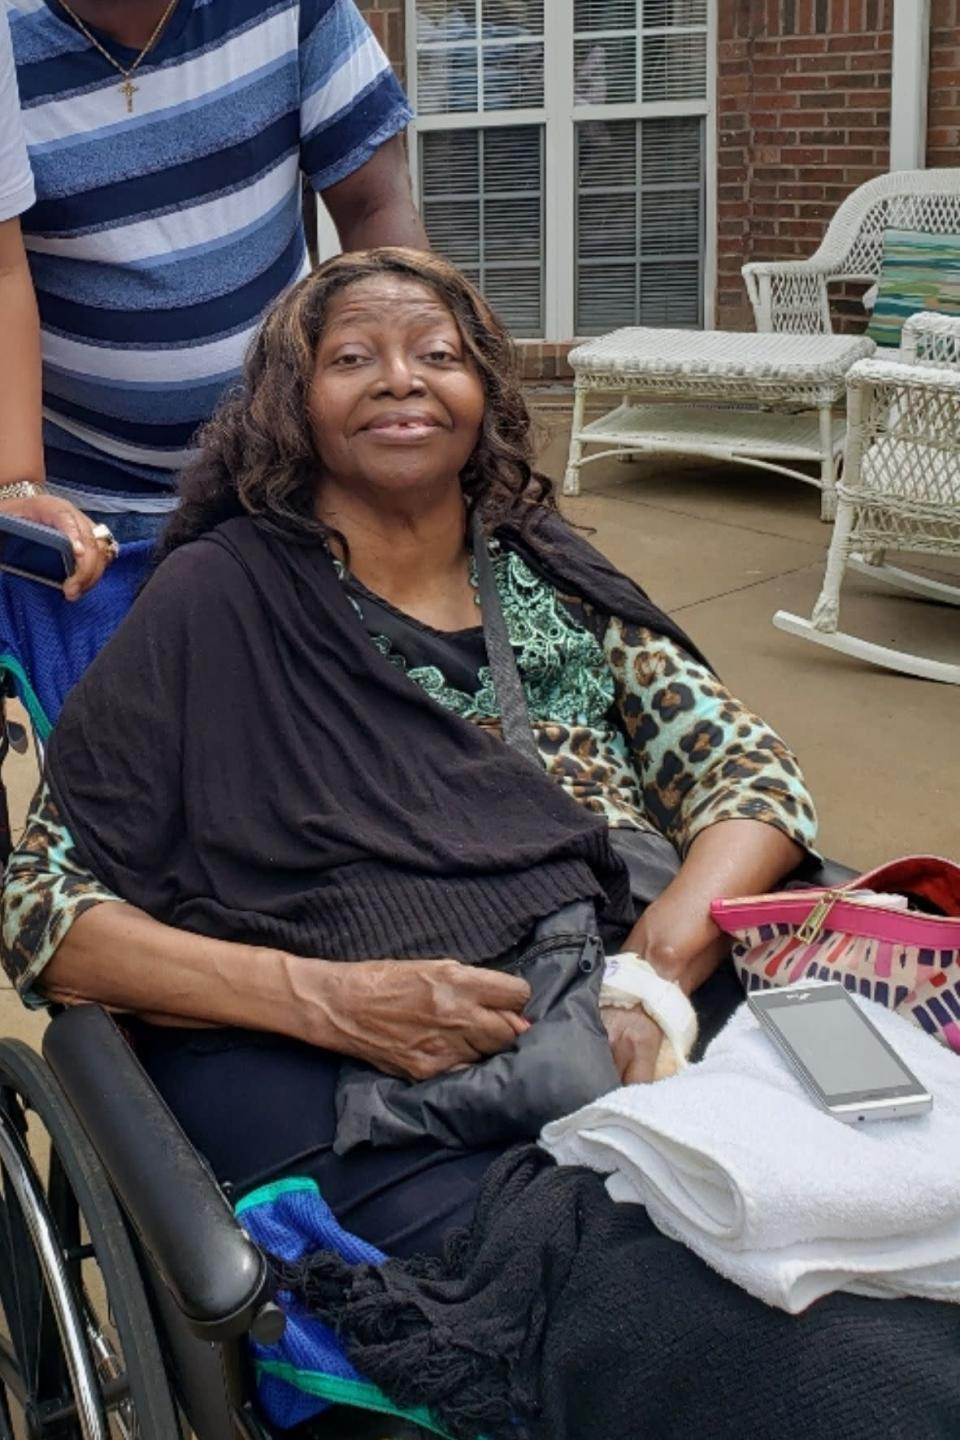 This photo provided by Tamika Dalton shows her mother, Theresa Dalton. When COVID-19 kept visitors from going inside the Blumenthal Nursing and Rehabilitation Center in Greensboro, N.C, Tamika would often visit at her mother's window a couple times a day. Through the glass, Dalton didn't like what she saw: Fewer and fewer aides passed by, and her mother sometimes sat for hours in a soiled diaper. (Courtesy Tamika Dalton via AP)